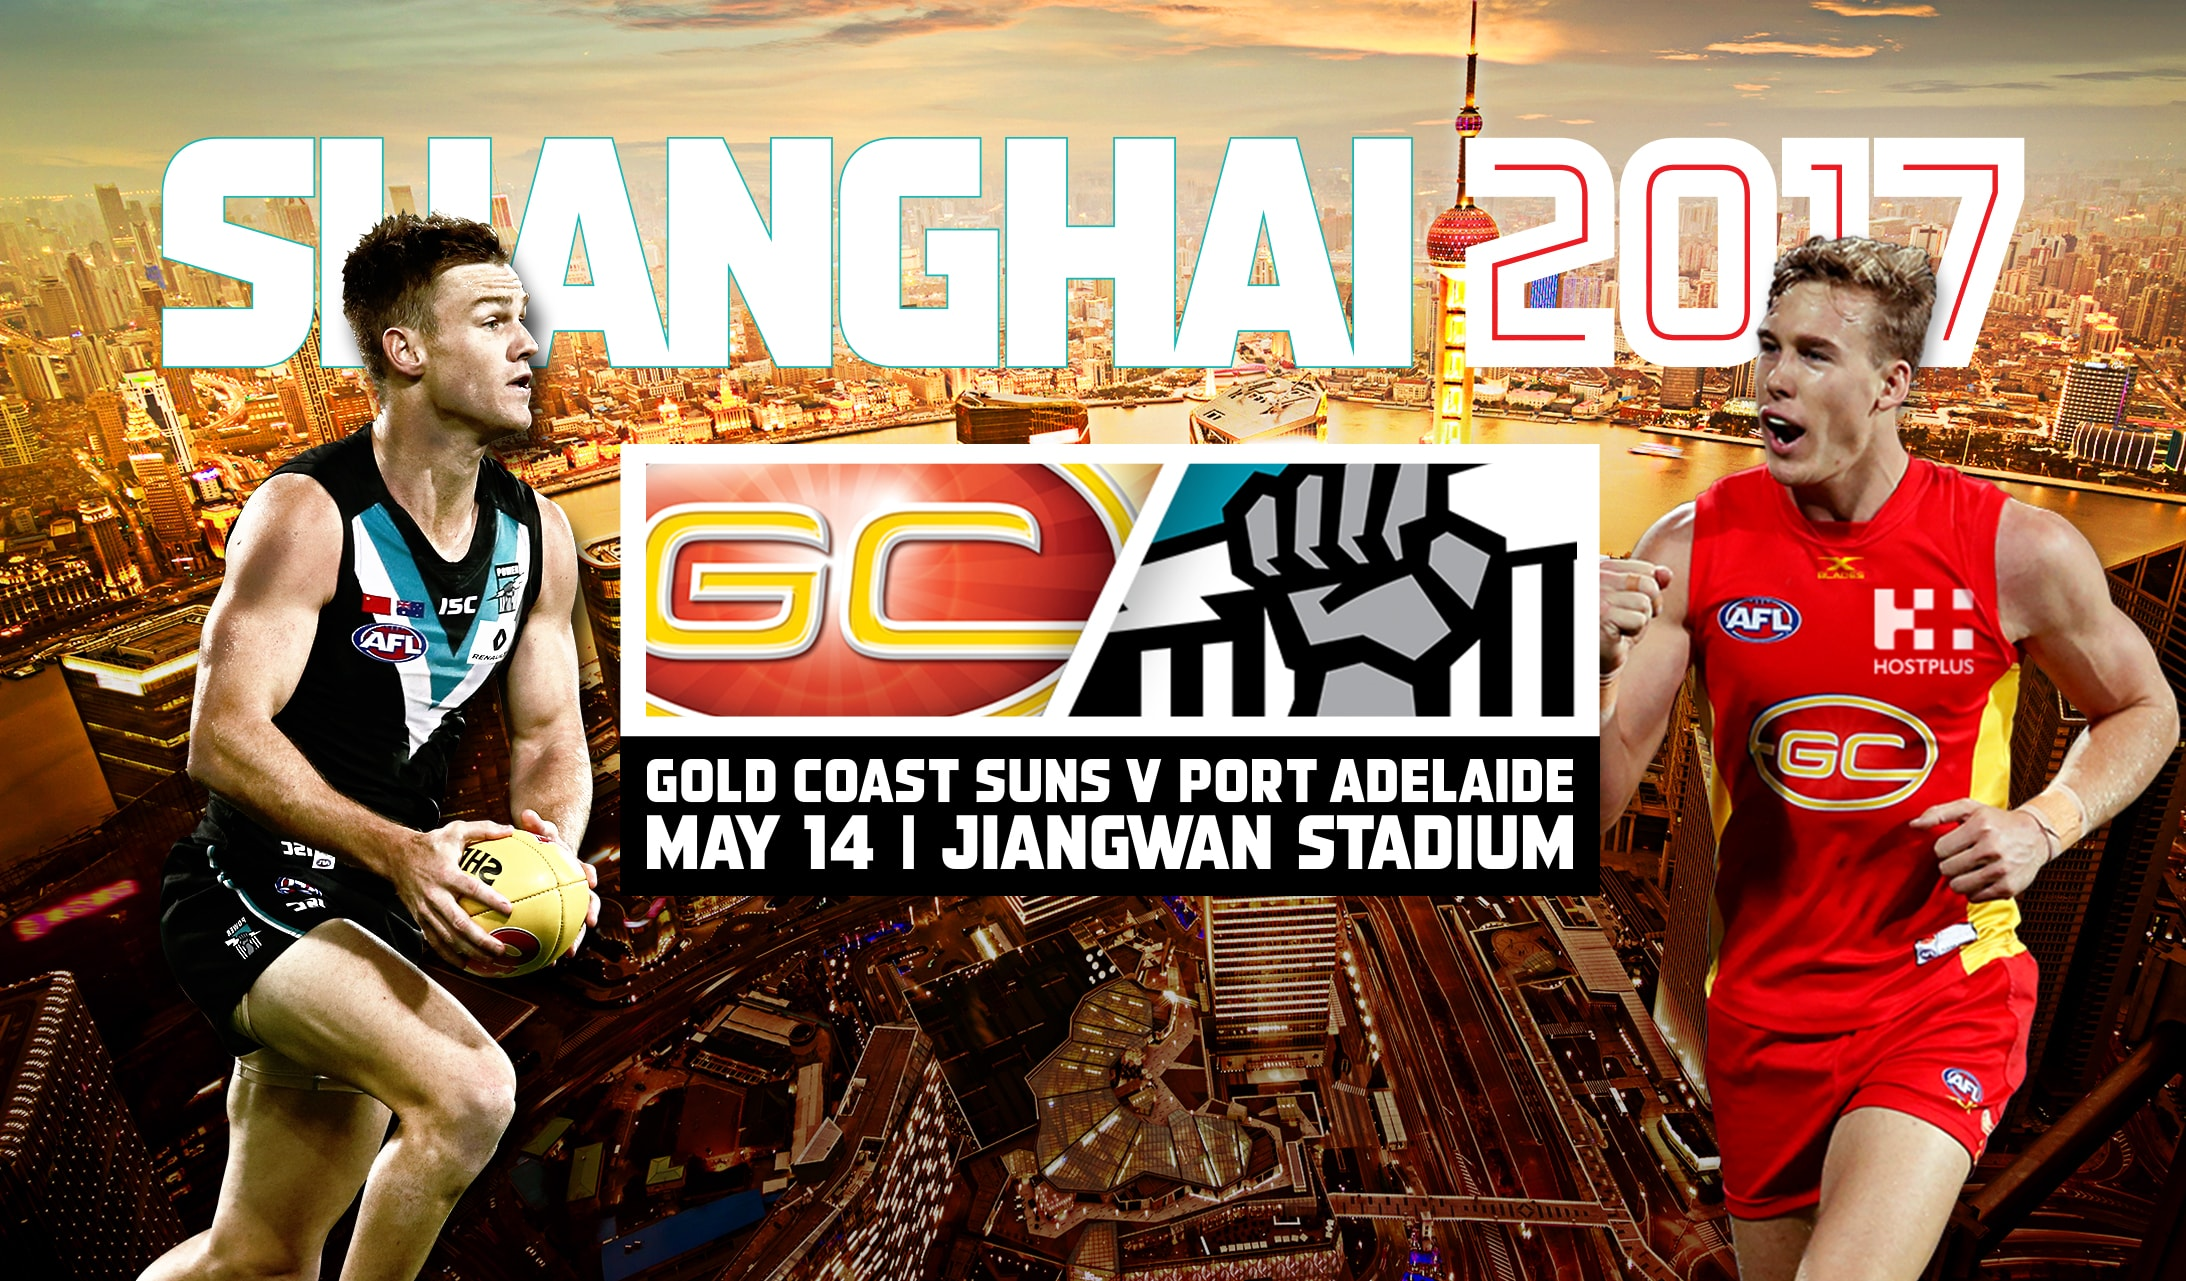 Watch the historic AFL game in Shanghai free!